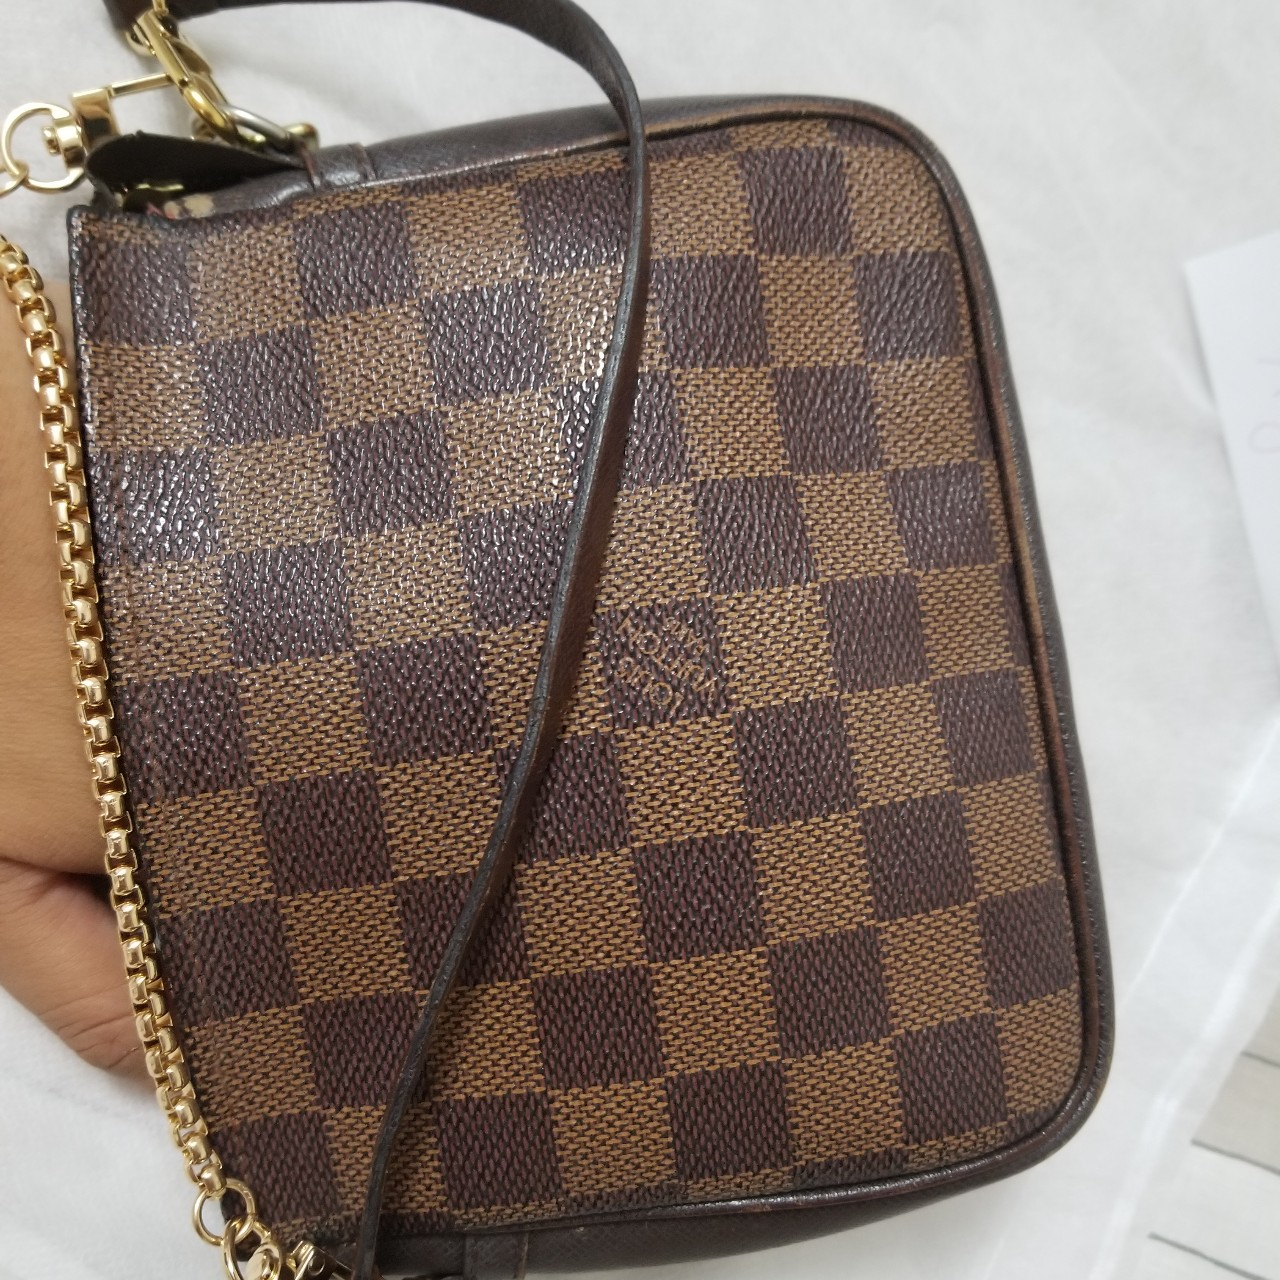 100 Authentic Mini Louis Vuitton Made In France Has No Date >> Do Not Buy On Hold Louis Vuitton Damier Ebene Depop